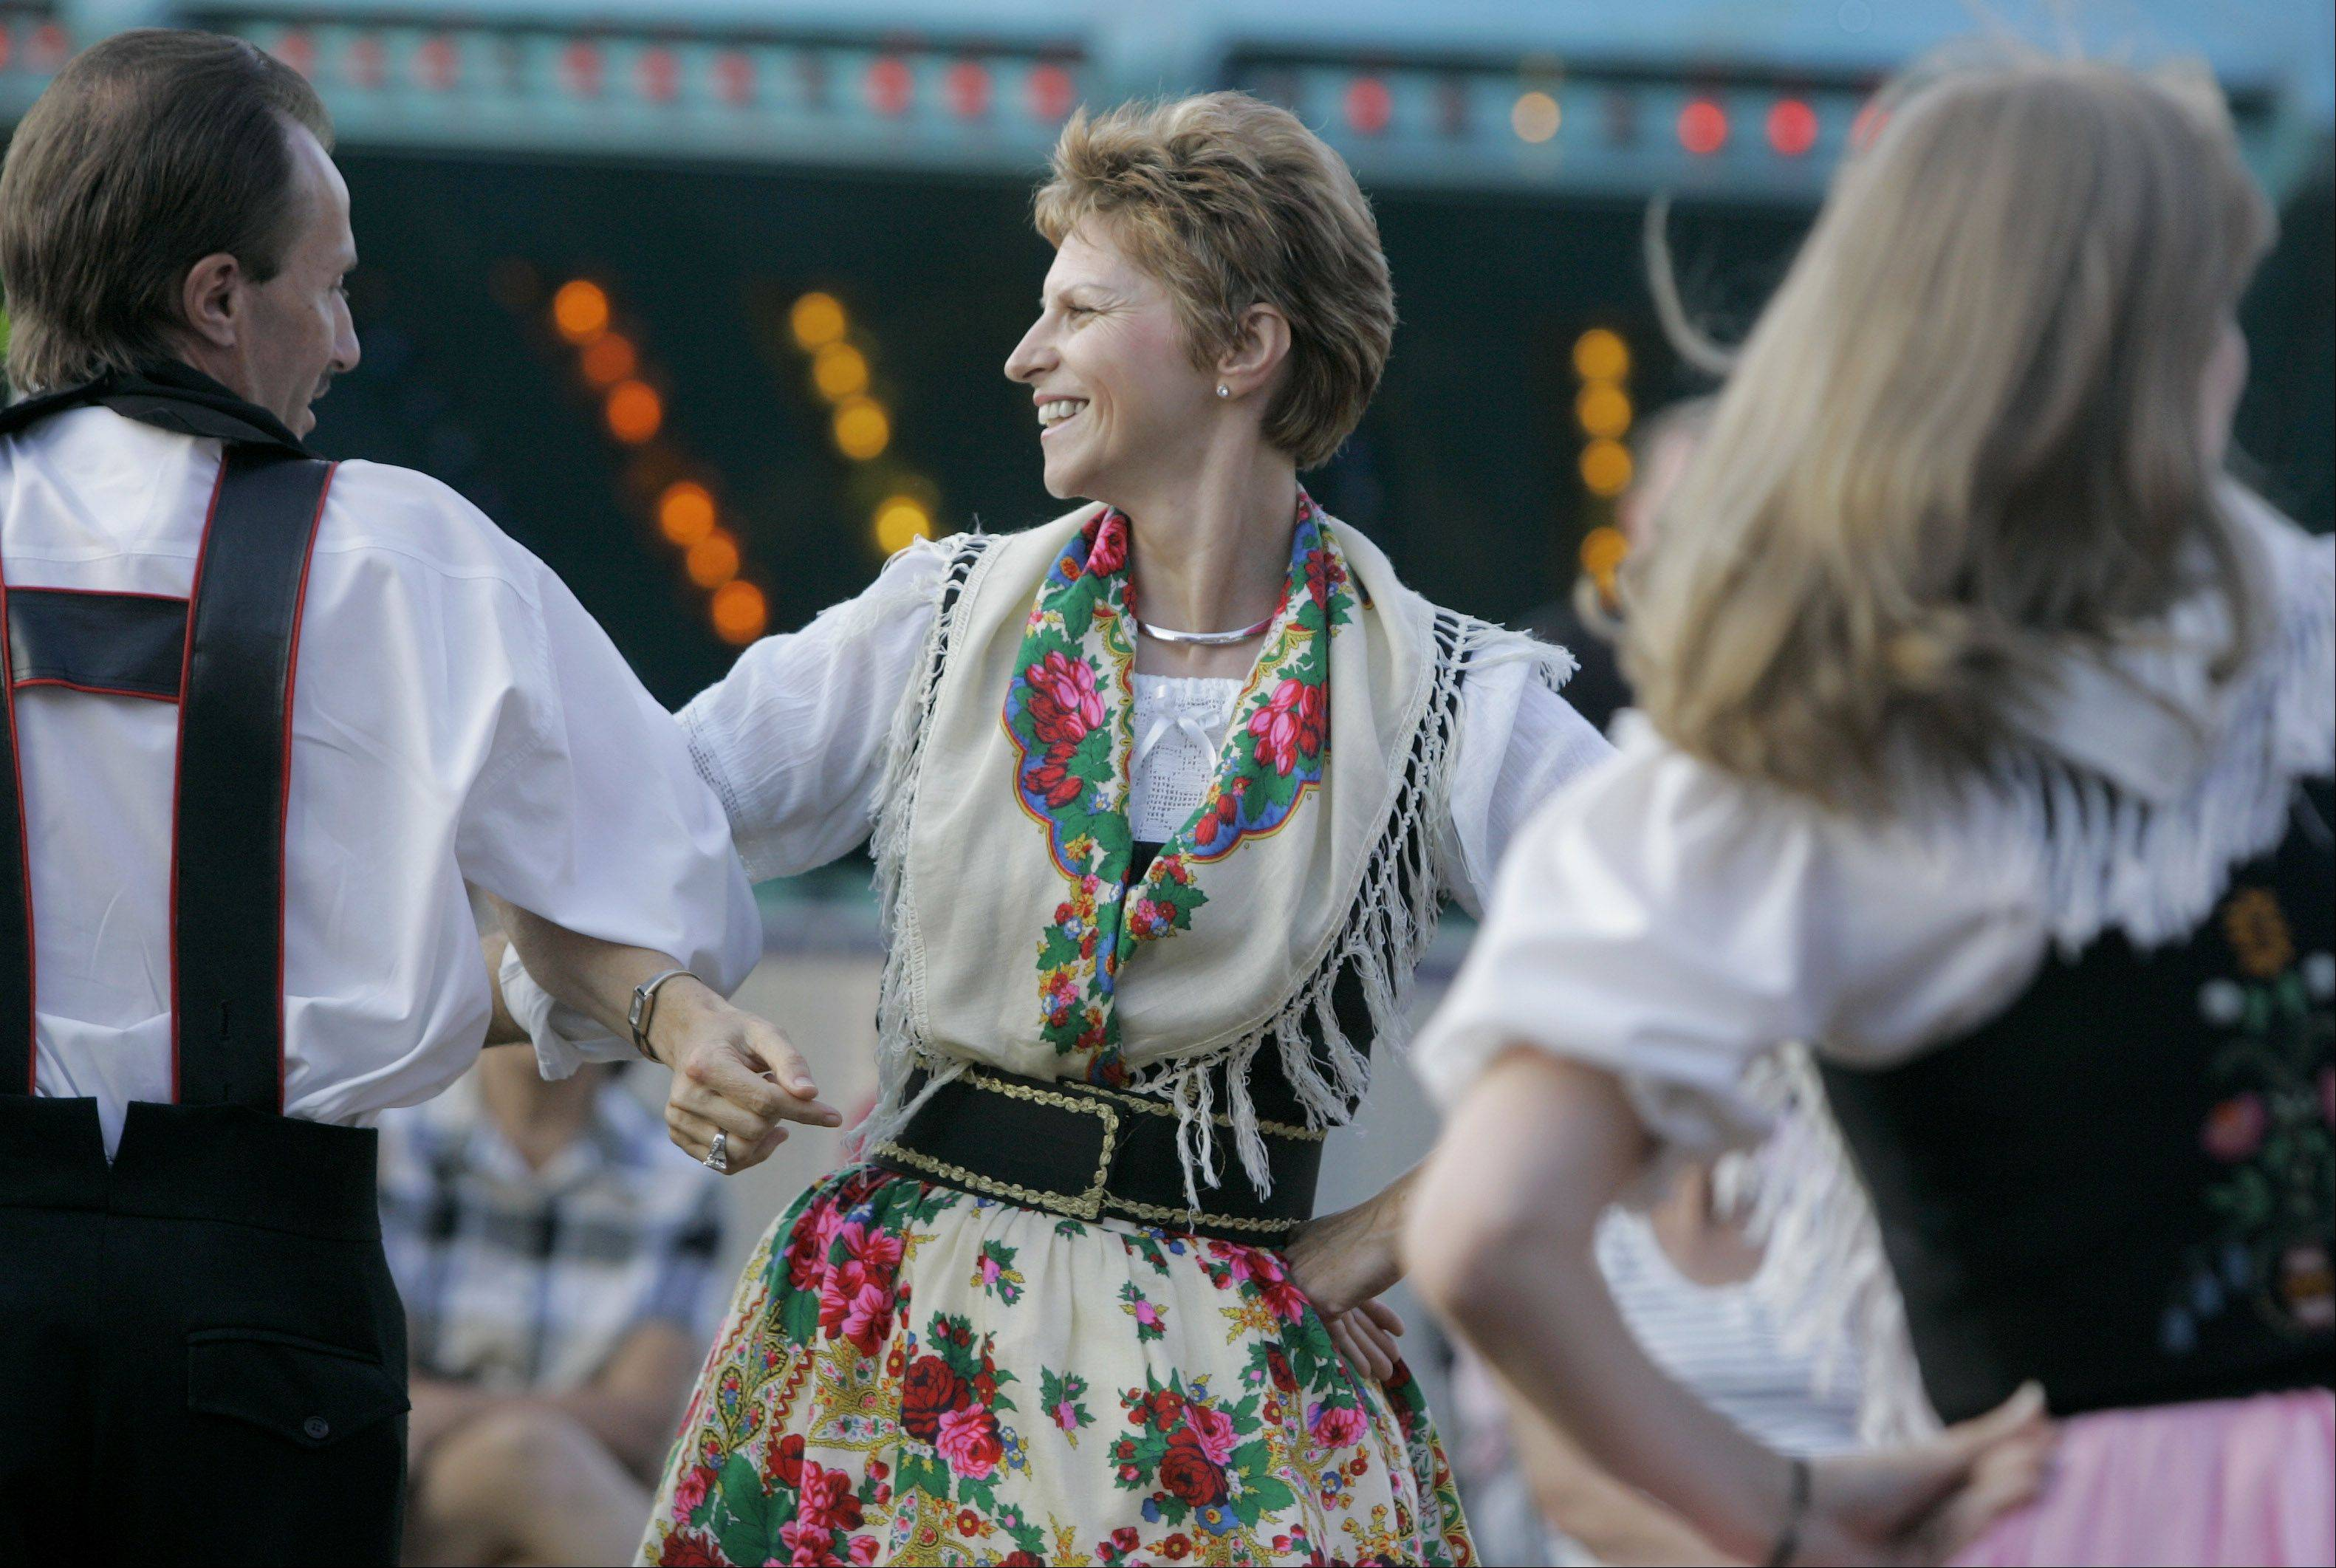 Traditional dance and music are regular features of Lombard's Sacred Heart Germanfest, which opens Thursday and continues through Sunday.